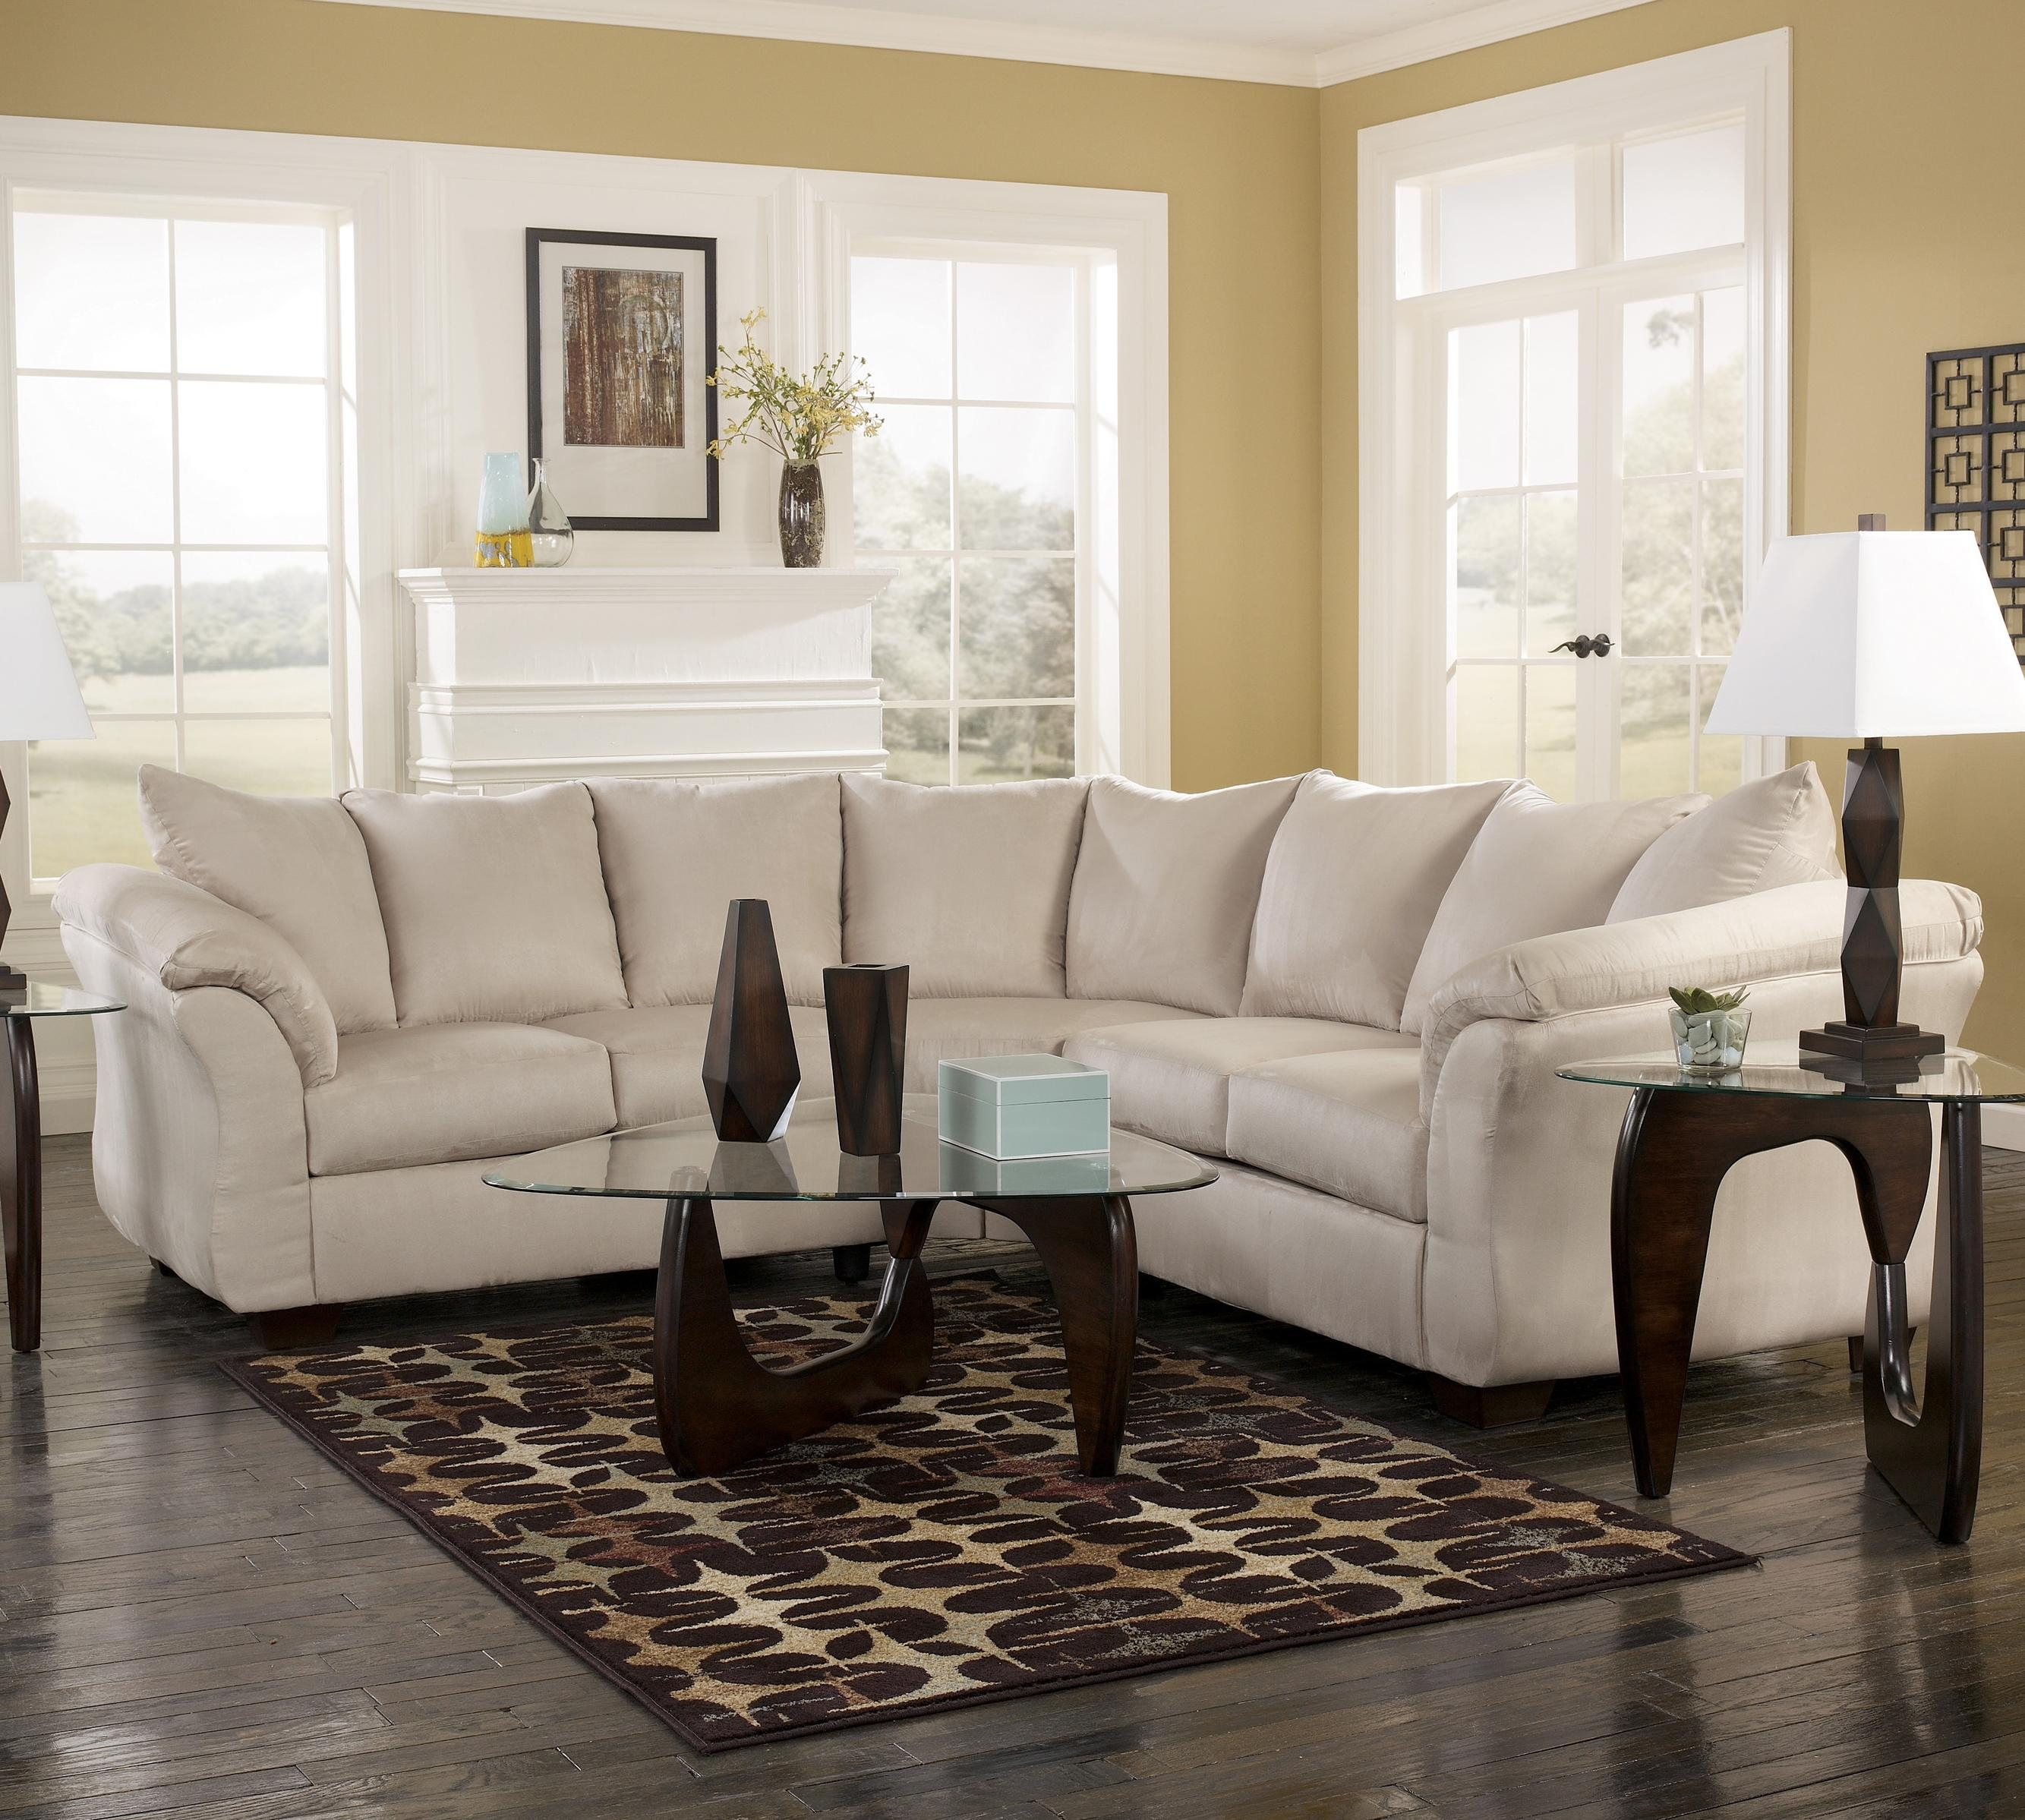 Contemporary Sectional Sofa With Sweeping Pillow Armssignature Within Signature Design Sectional Sofas (Image 4 of 20)